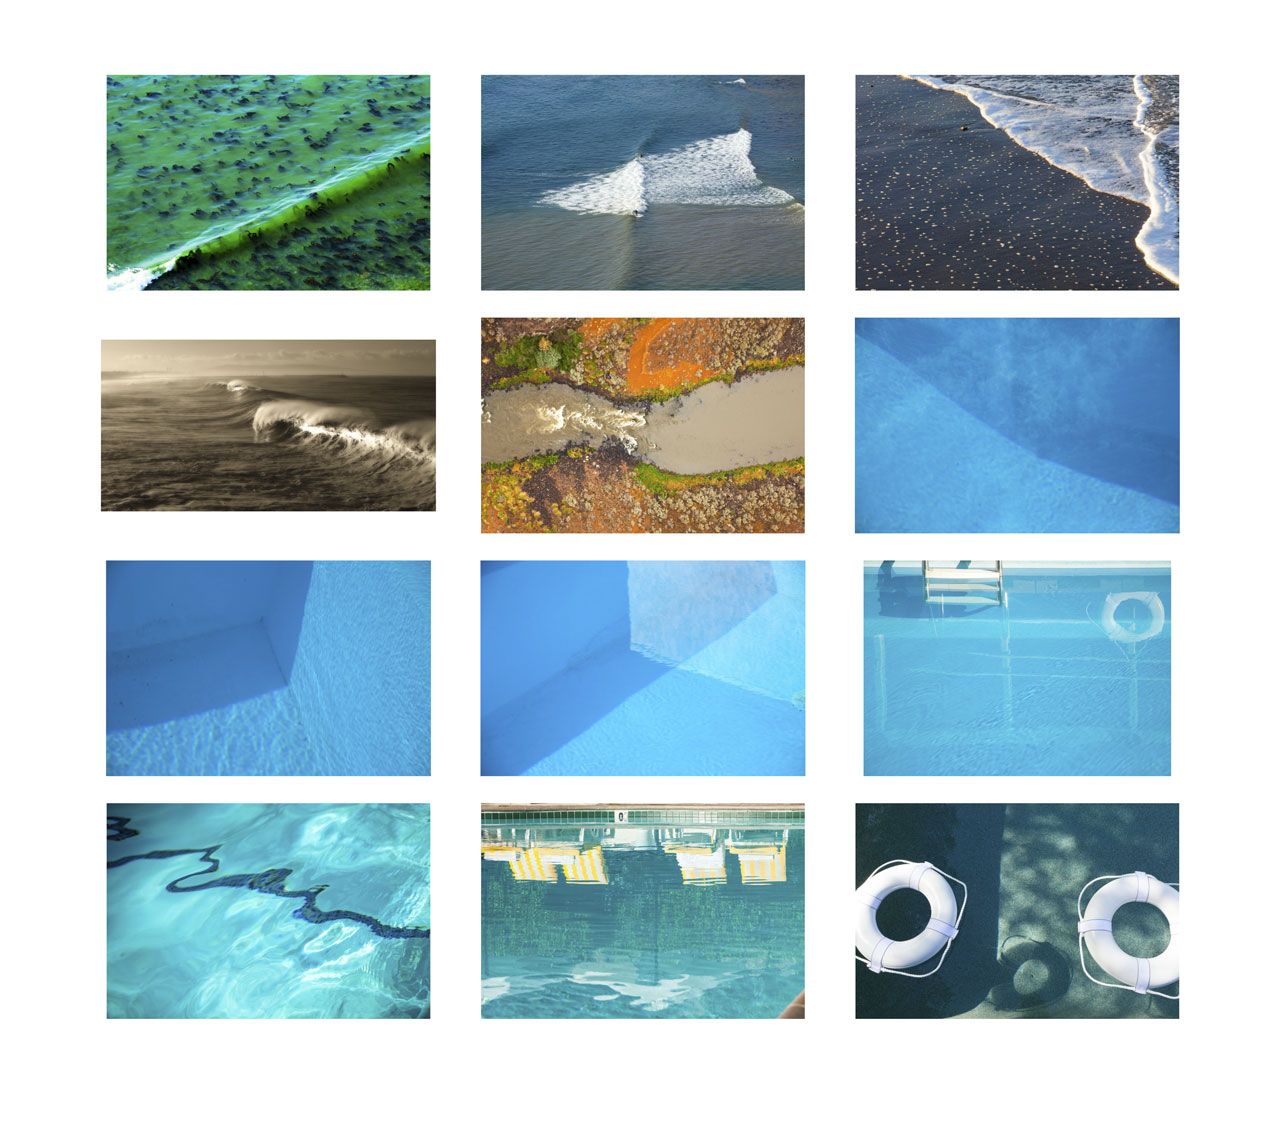 032_Water-Typology